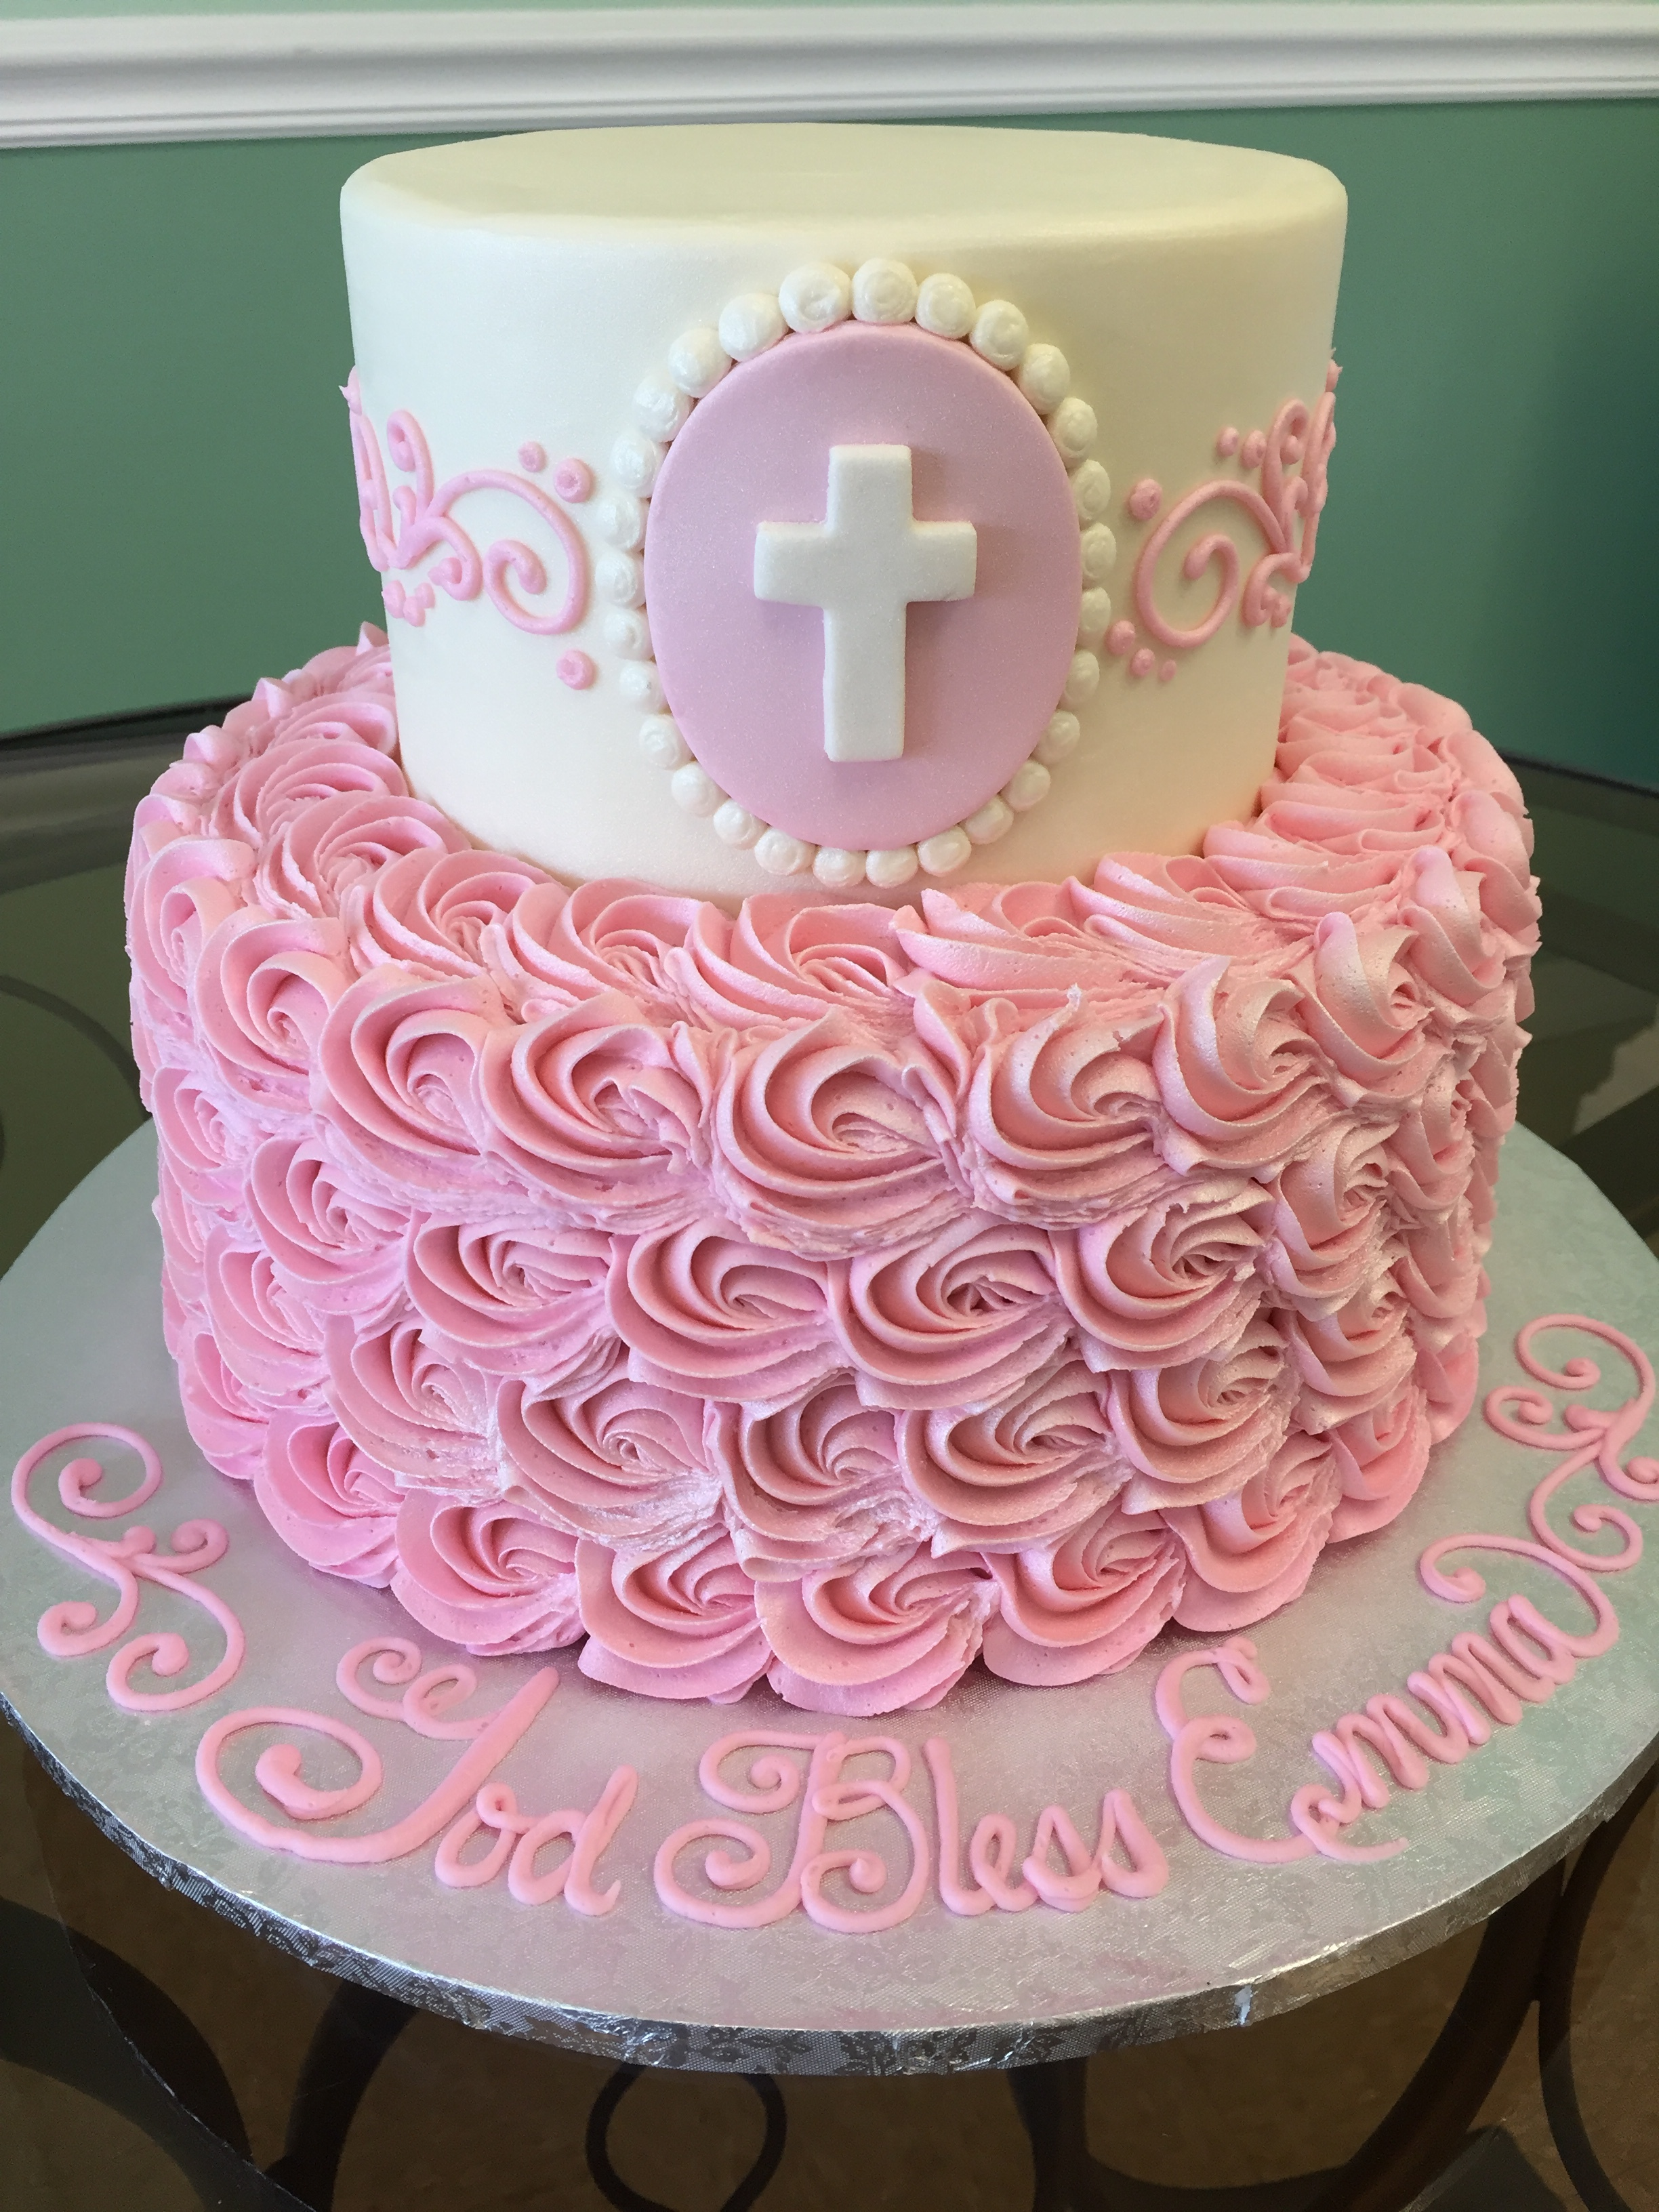 Rosettes and A Cross Tier Cake 211